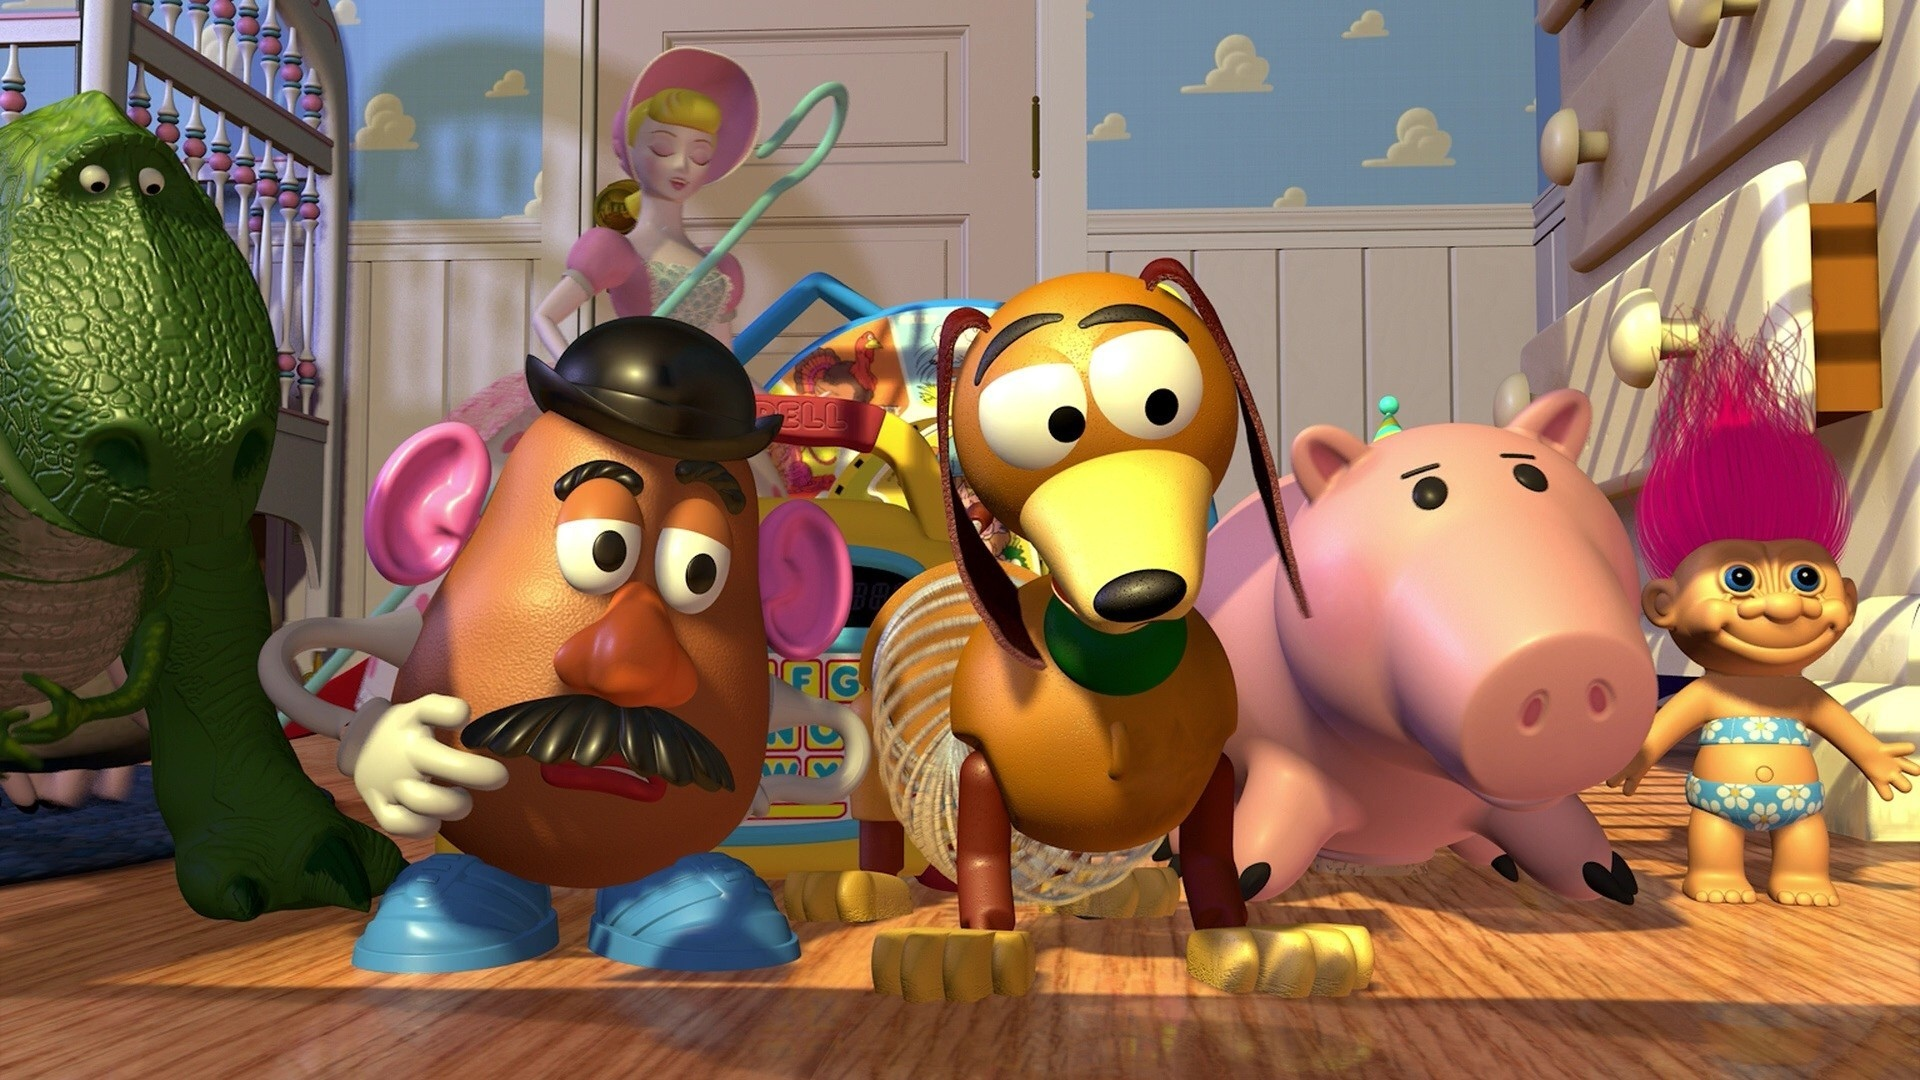 fondos de toy story 12 y 3 wallpapers